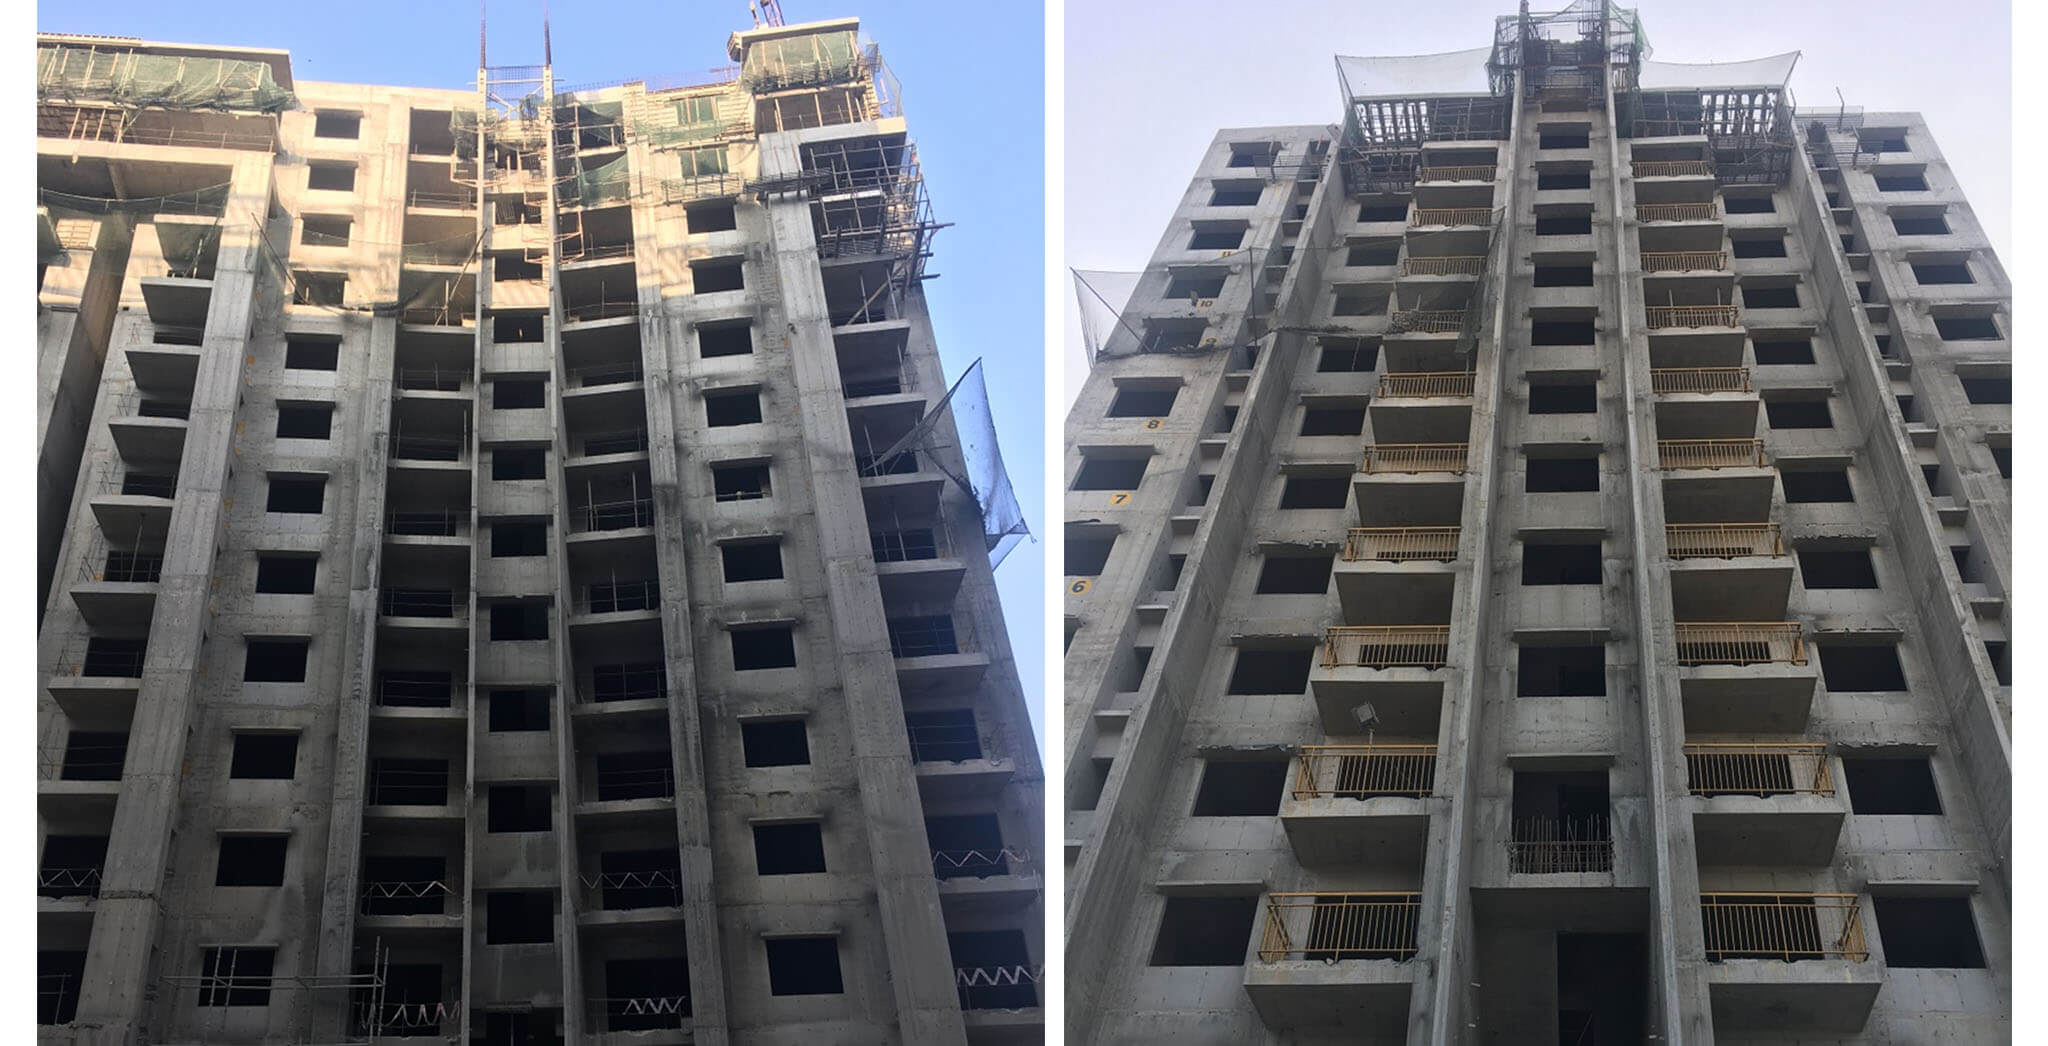 Feb 2018 - Crimson Block, T wing: 2 BHK and 3 BHK—above terrace work-in-progress